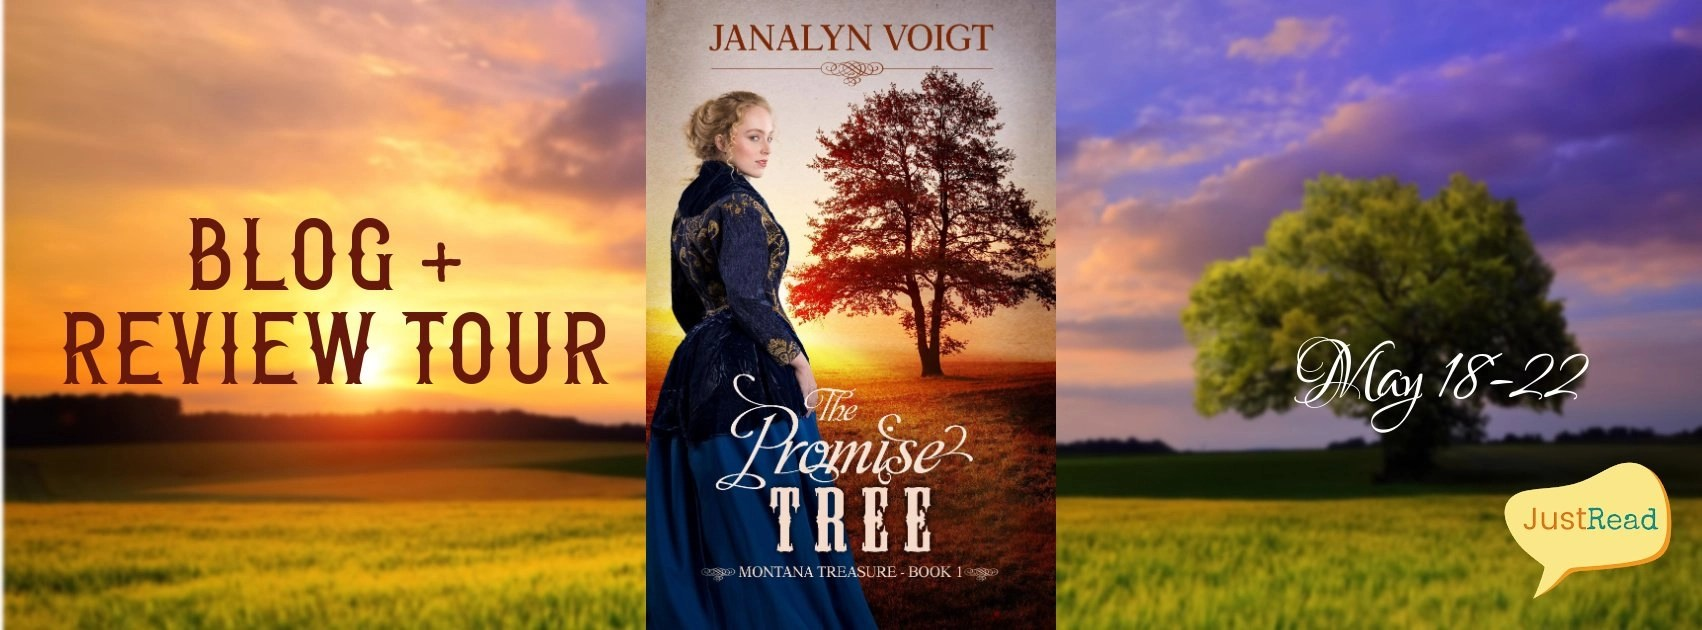 Welcome to The Promise Tree Blog + Review Tour & Giveaway!